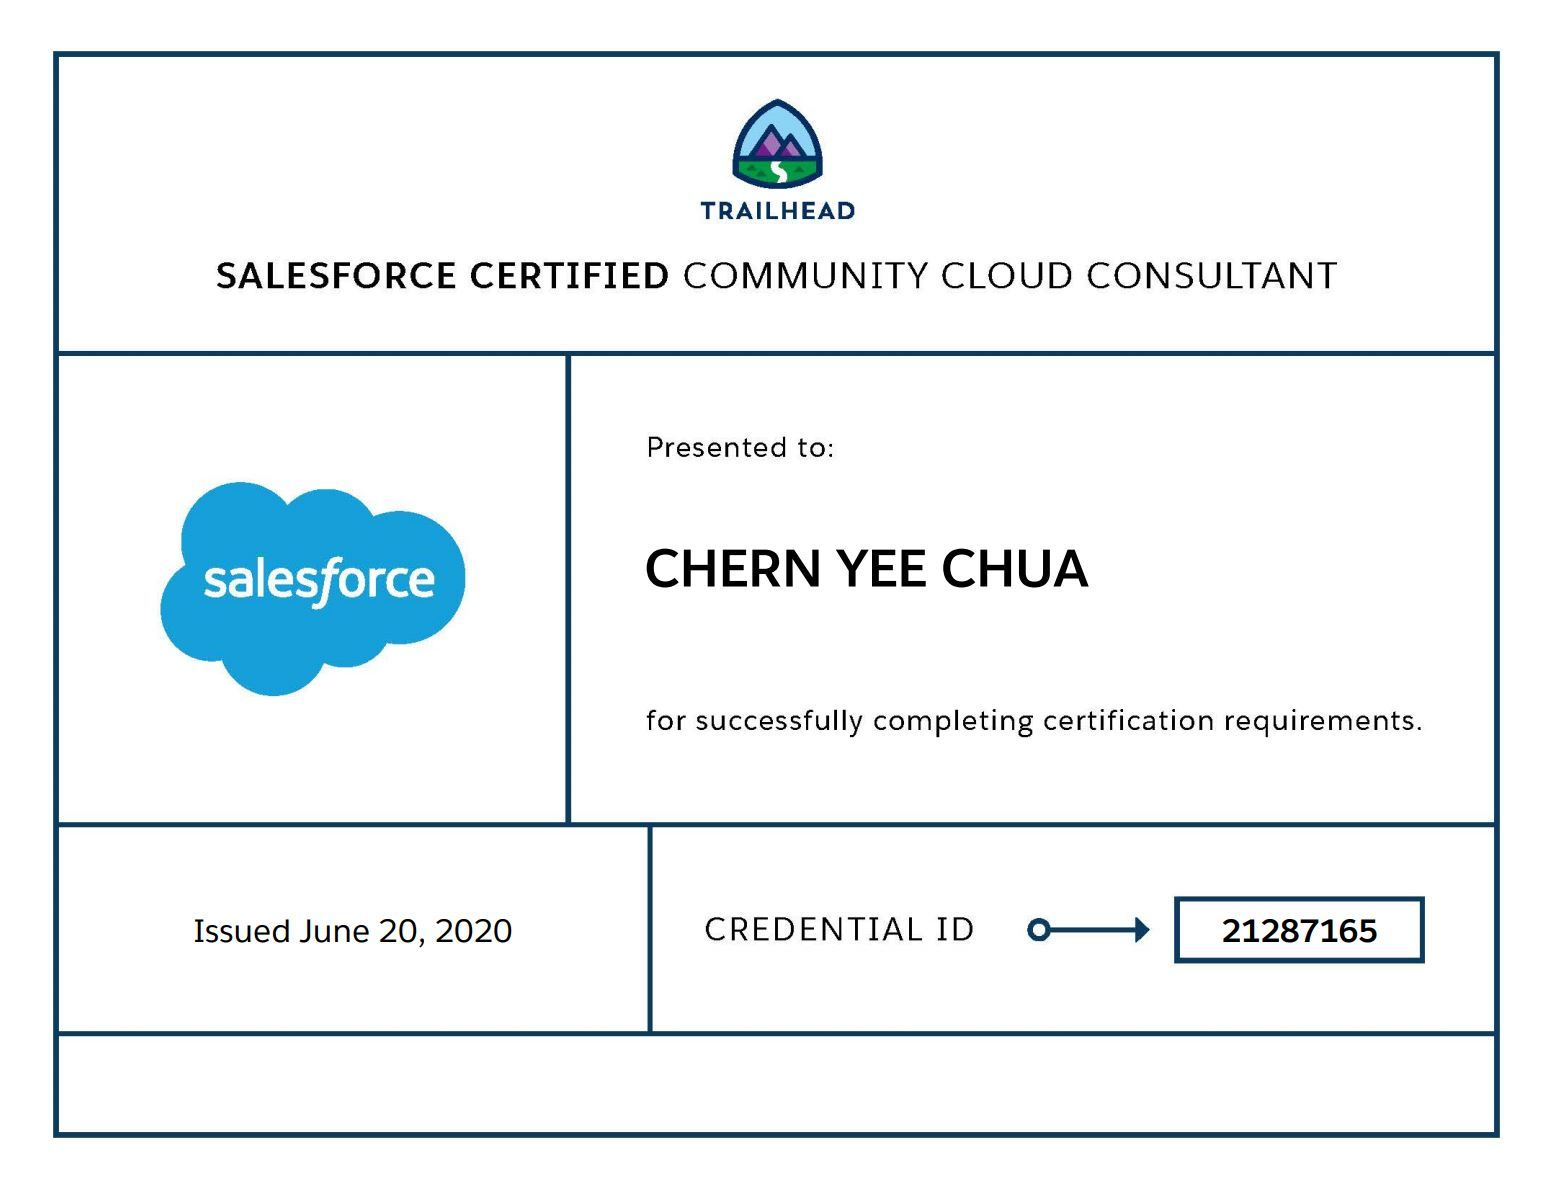 salesforce certifications issued many certification cloud every recent consultant